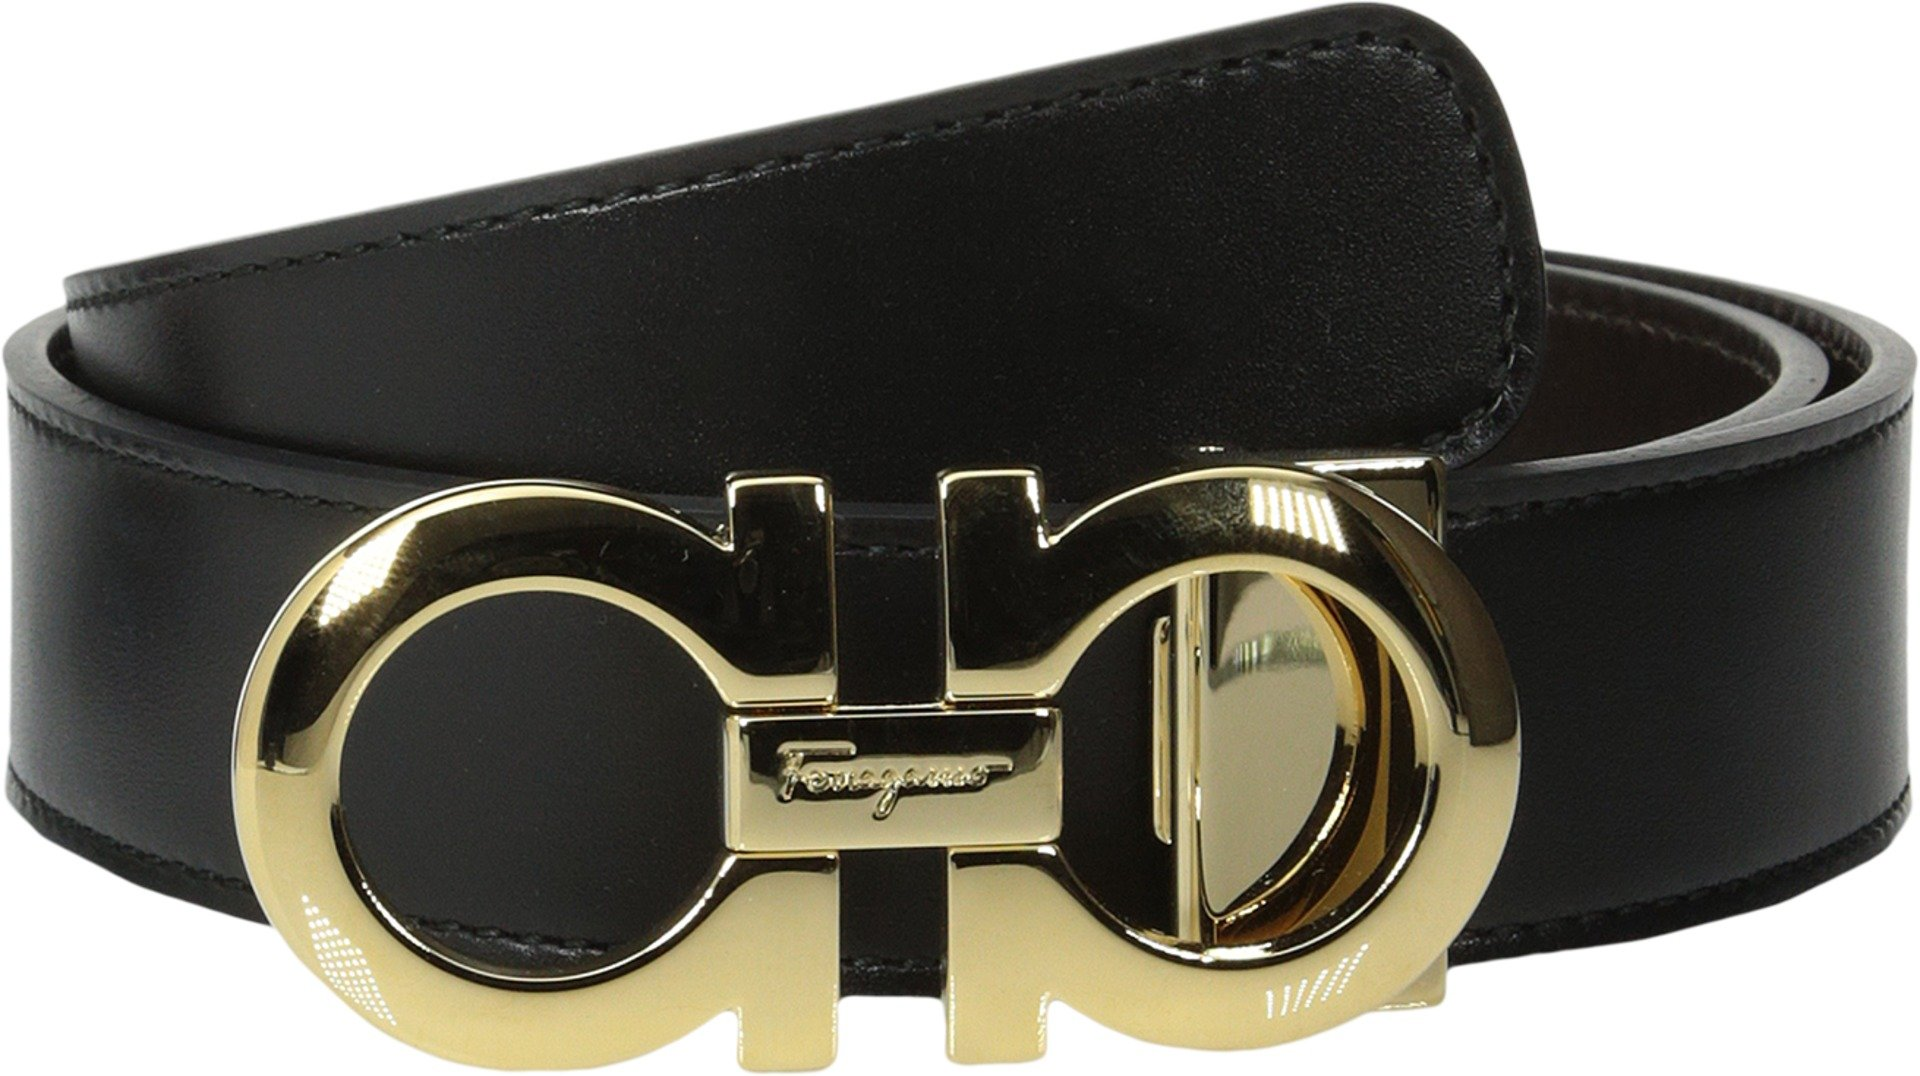 Salvatore Ferragamo Men's Reversible/Adjustable Belt-675542, Nero/Hickory 40 by Salvatore Ferragamo (Image #1)